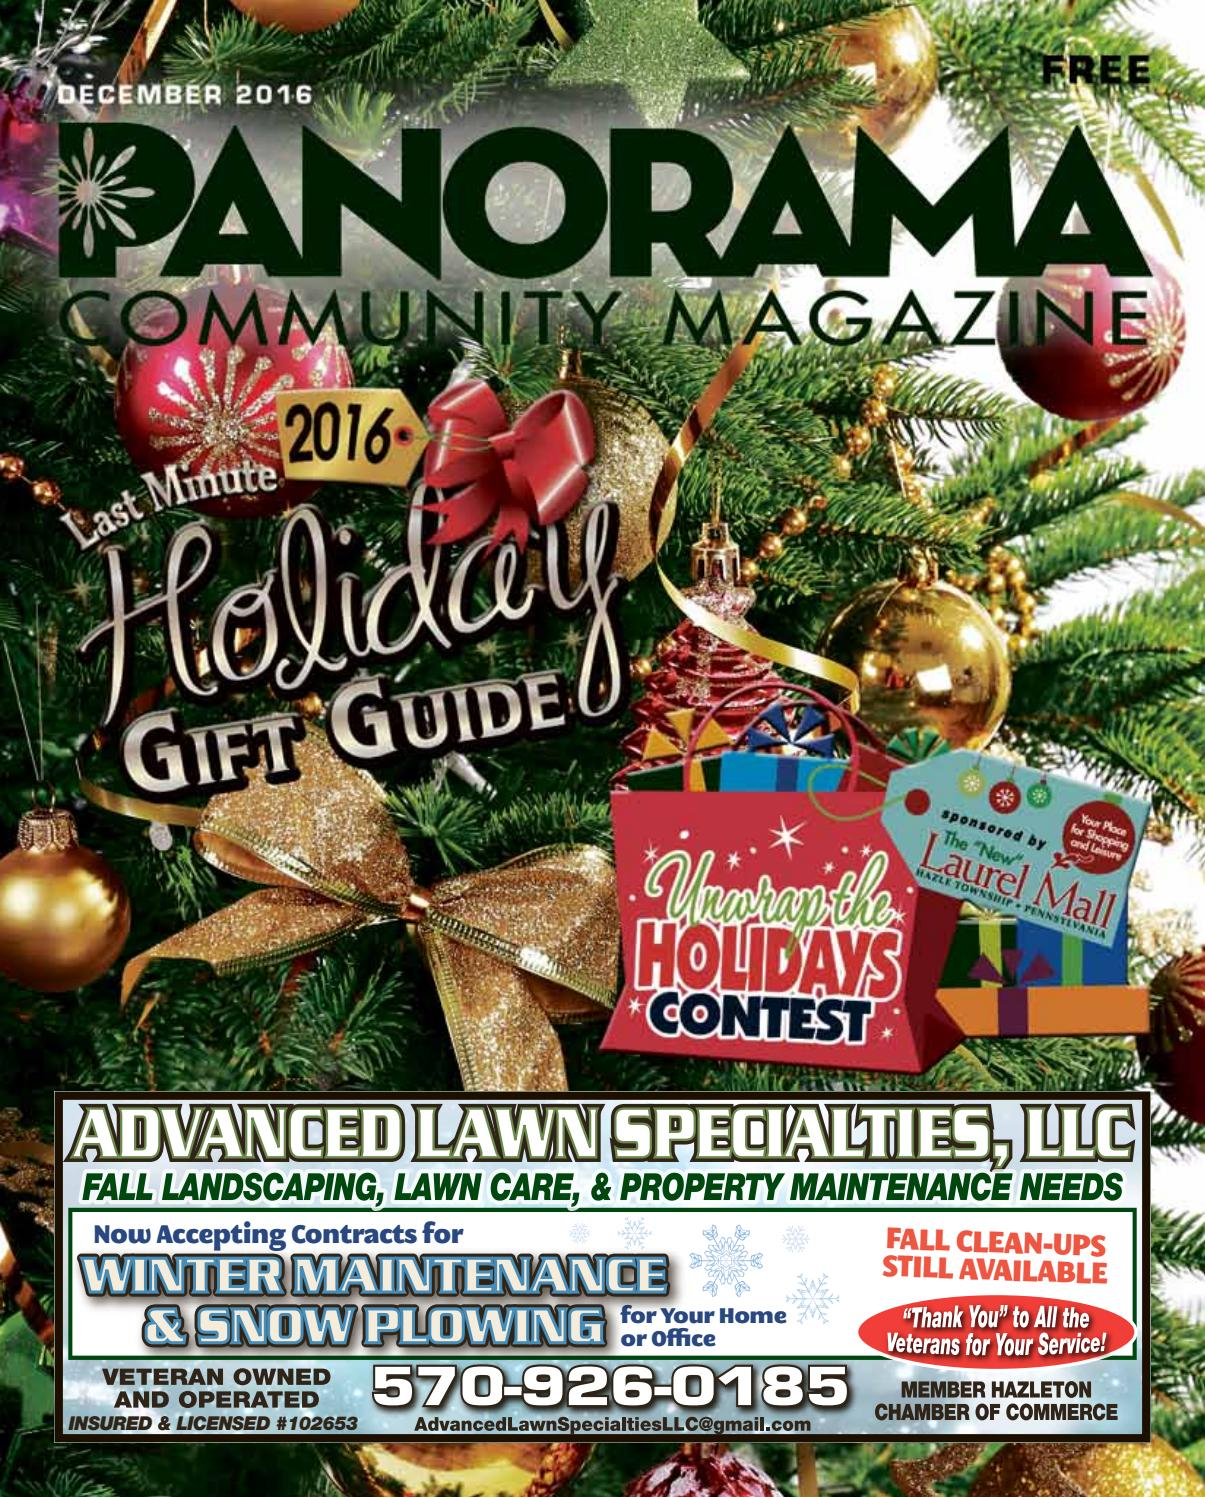 Kitchen gallery design center north broad street west hazleton pa - Panorama Community Magazine December 2016 By Panorama Community Magazine Issuu